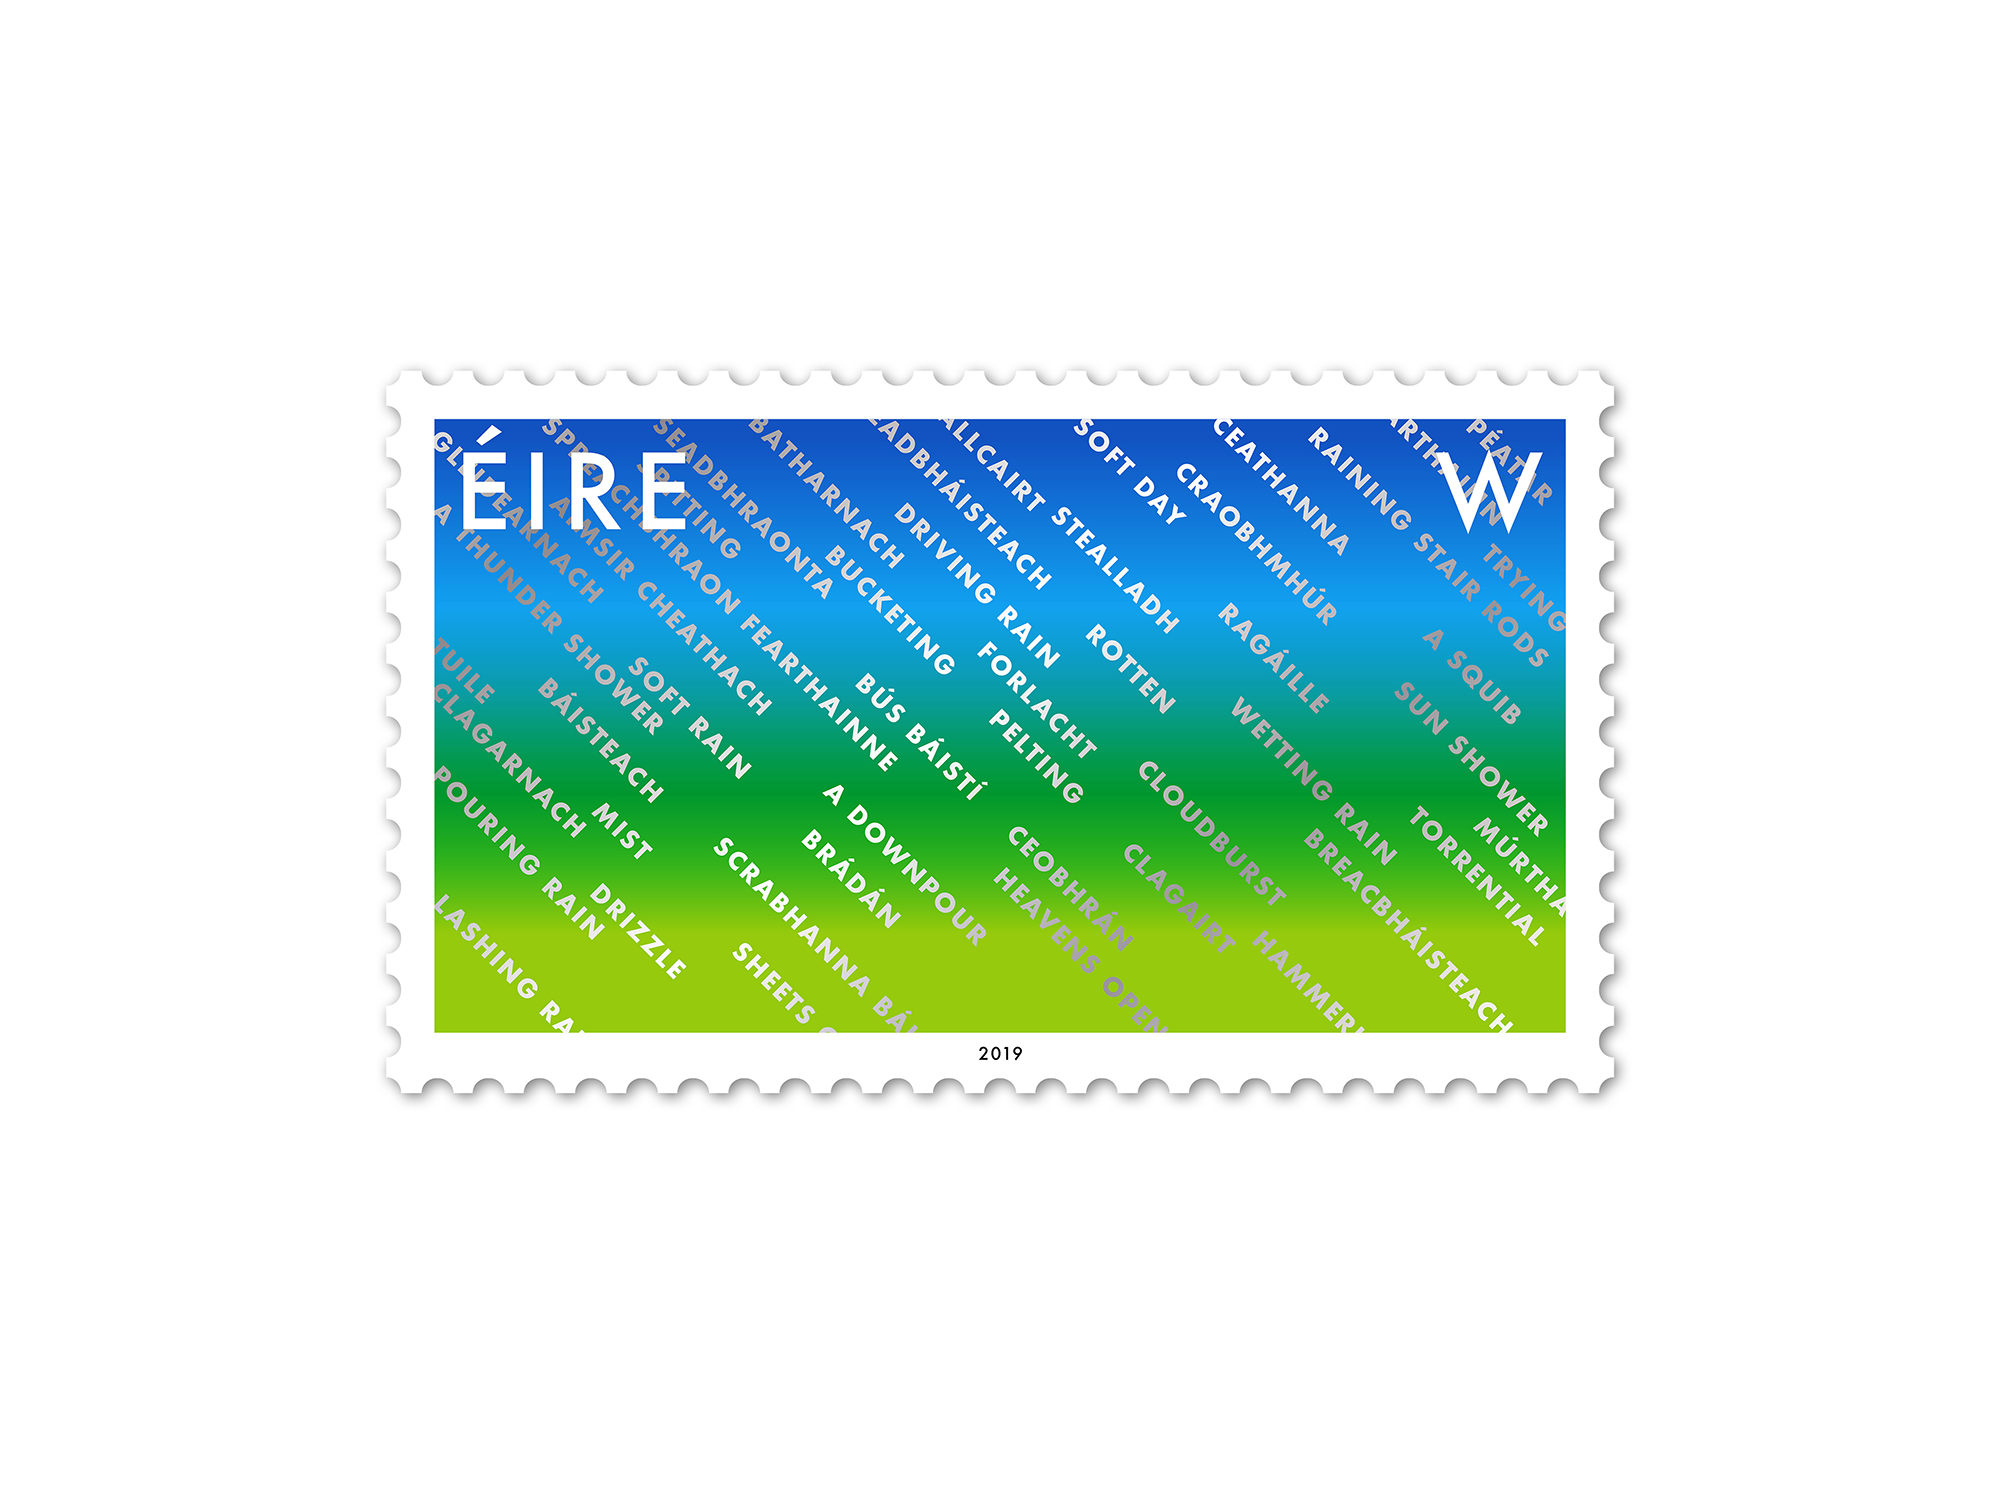 Cover image: A Stamp for Ireland